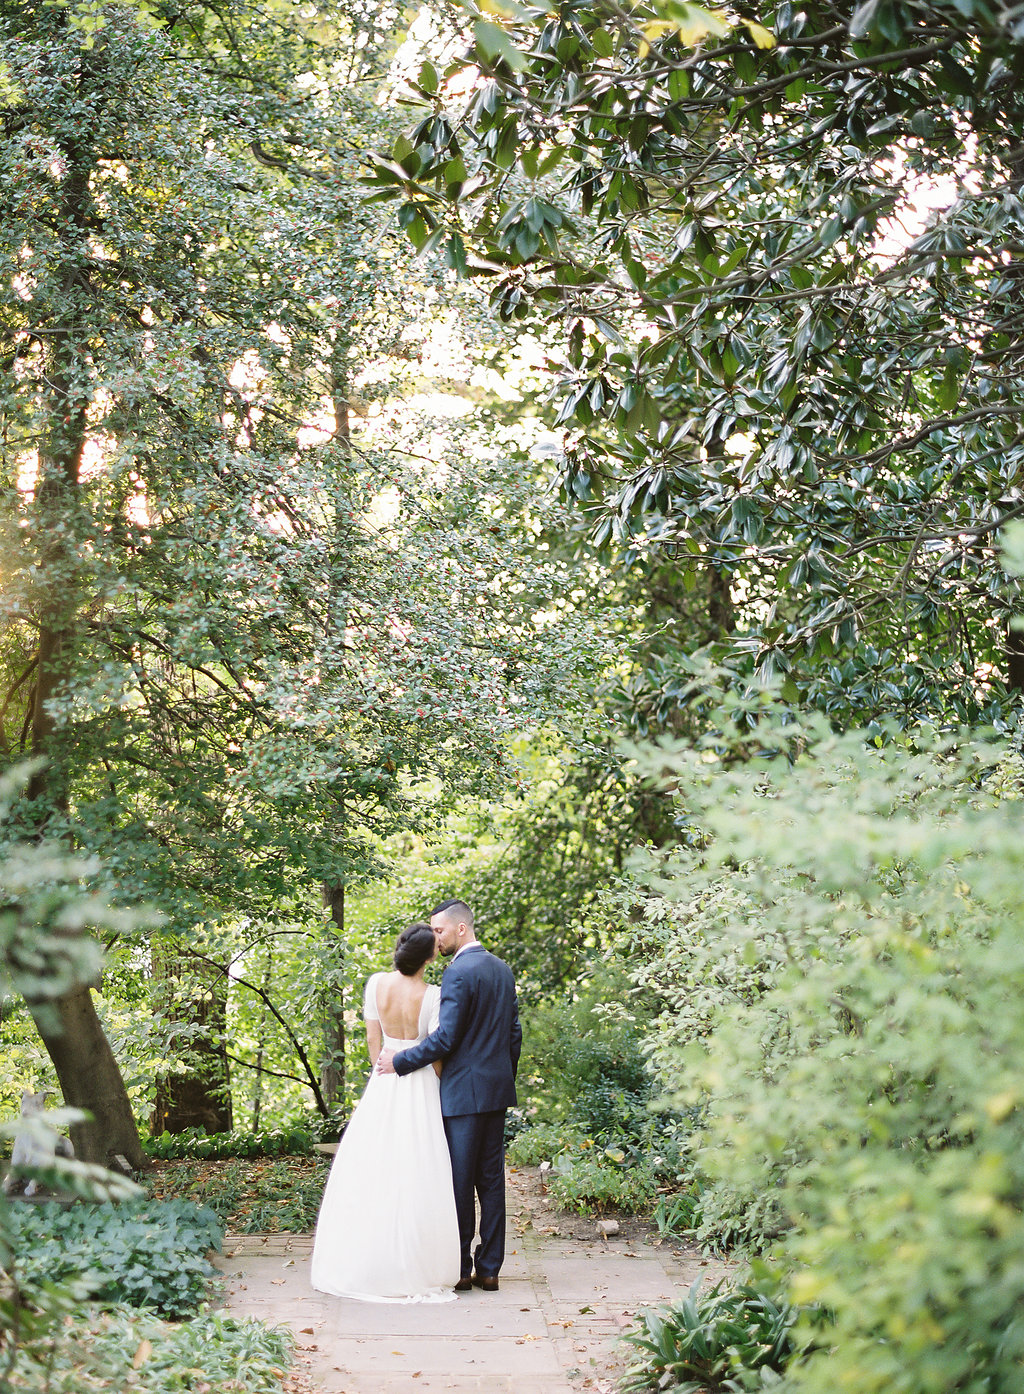 French Inspired Fall Wedding with Fine Art Destination Wedding Planner East Made Event Company and DC Film Photographer Vicki Grafton Photography at Tudor Place in Washington DC-133.jpg